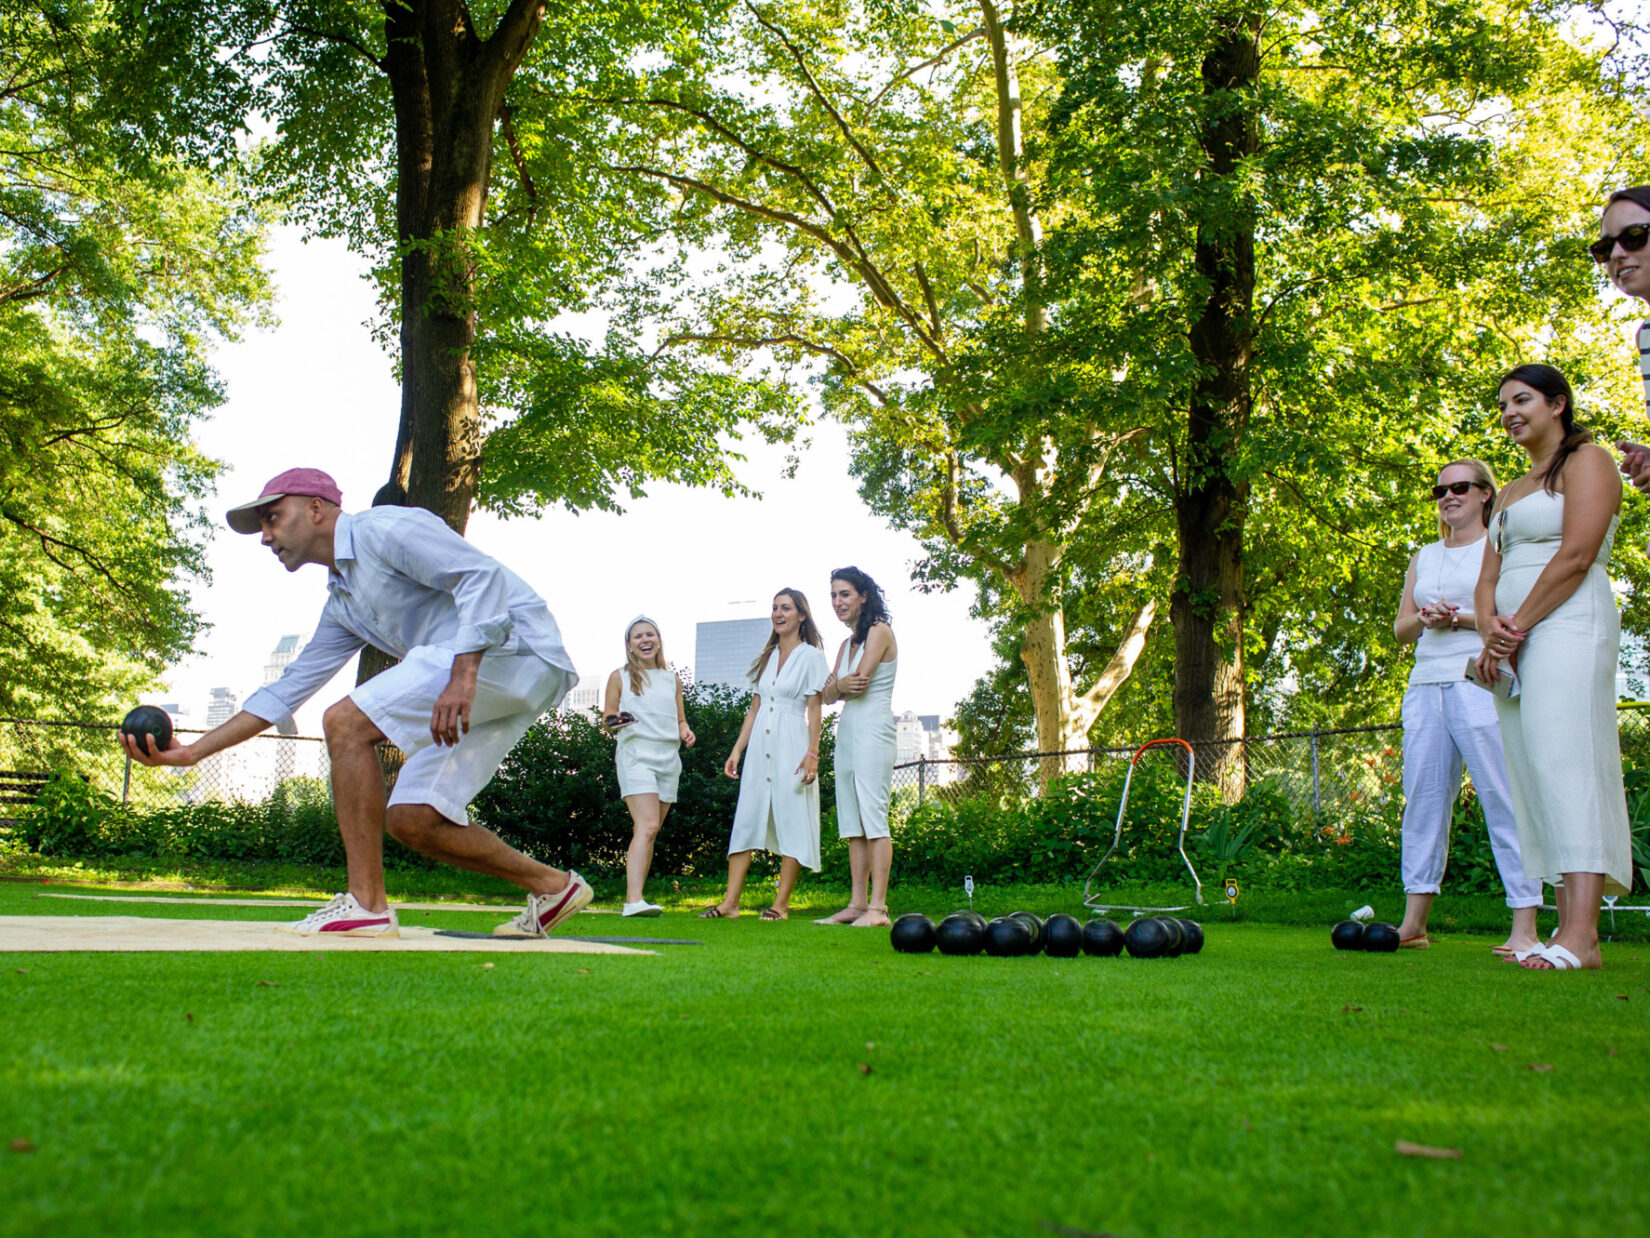 Lawn bowlers on the green